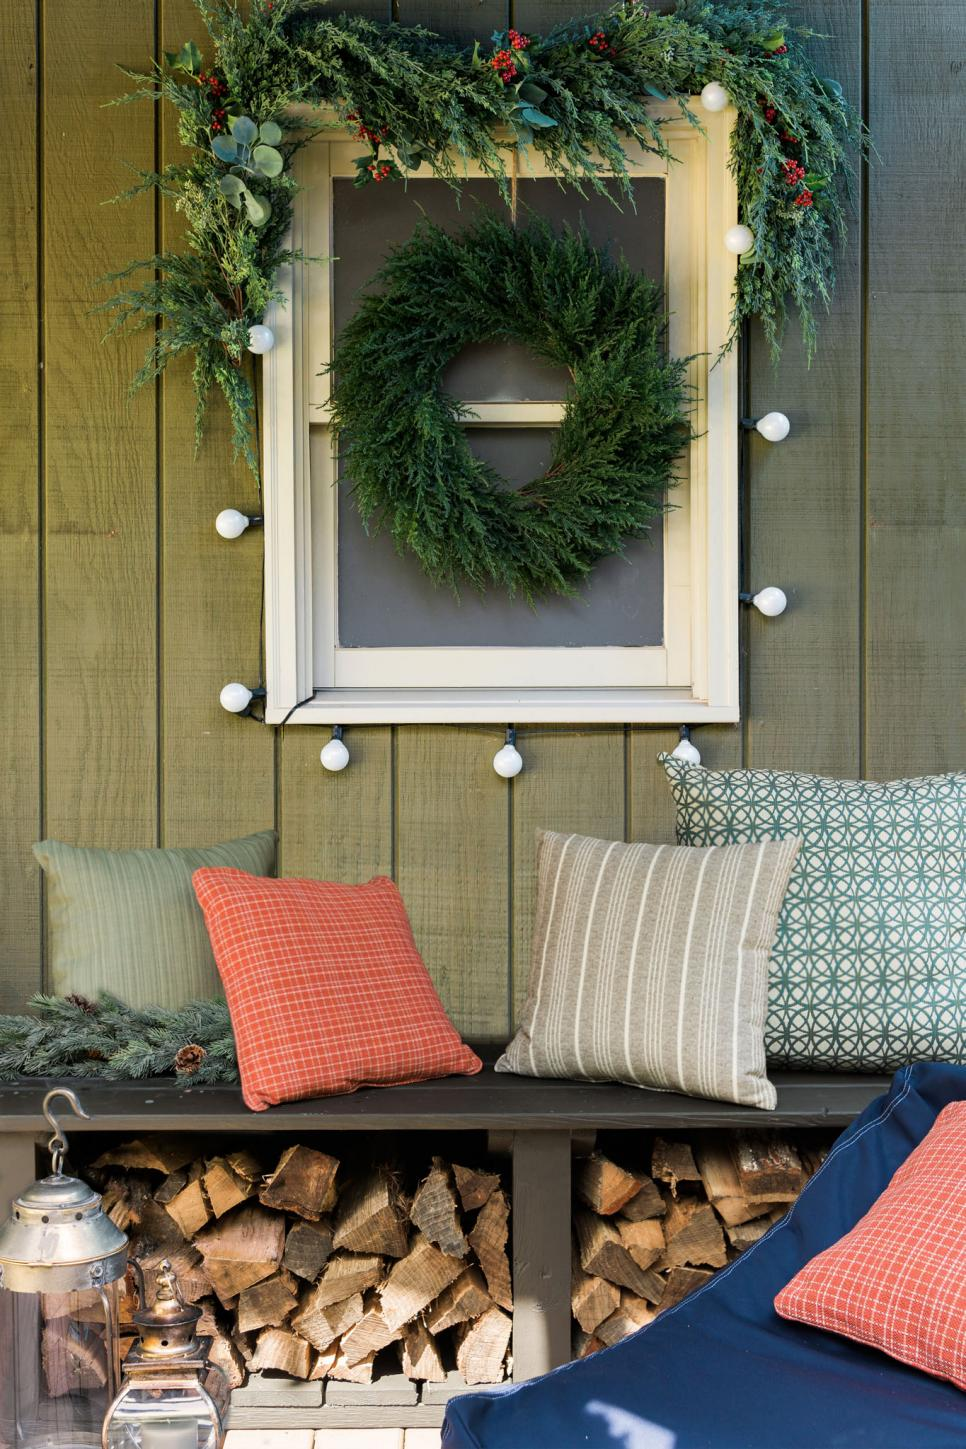 How to Turn Your Front Porch Into the North Pole | HGTV - photo#41